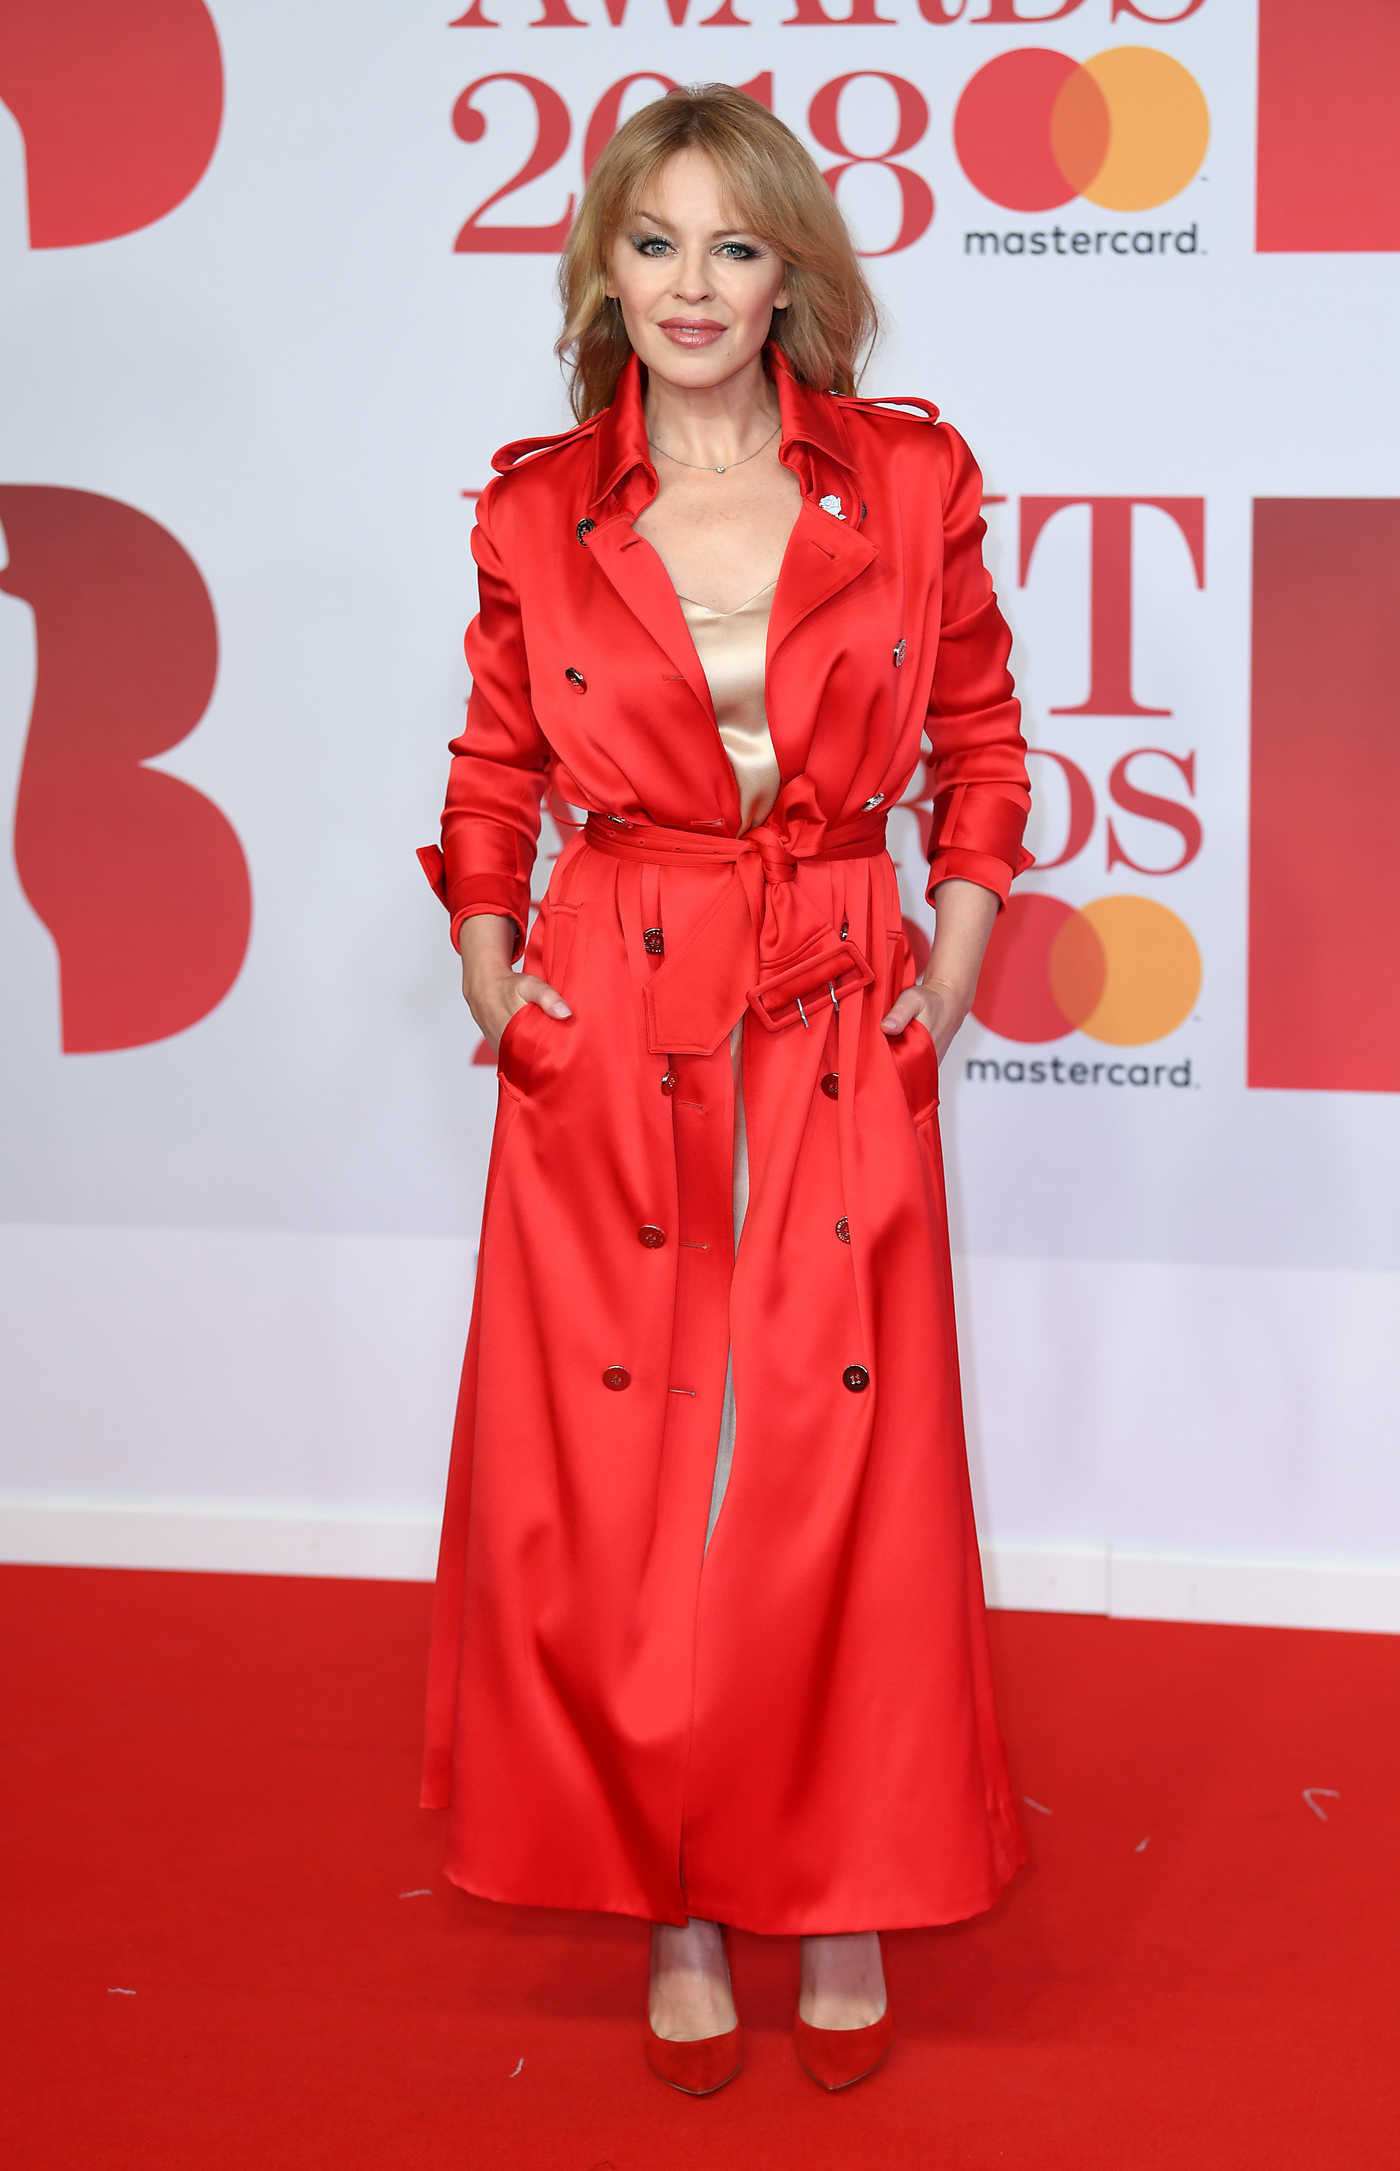 Kylie Minogue Attends the 2018 Brit Awards at the O2 Arena in London 02/21/2018